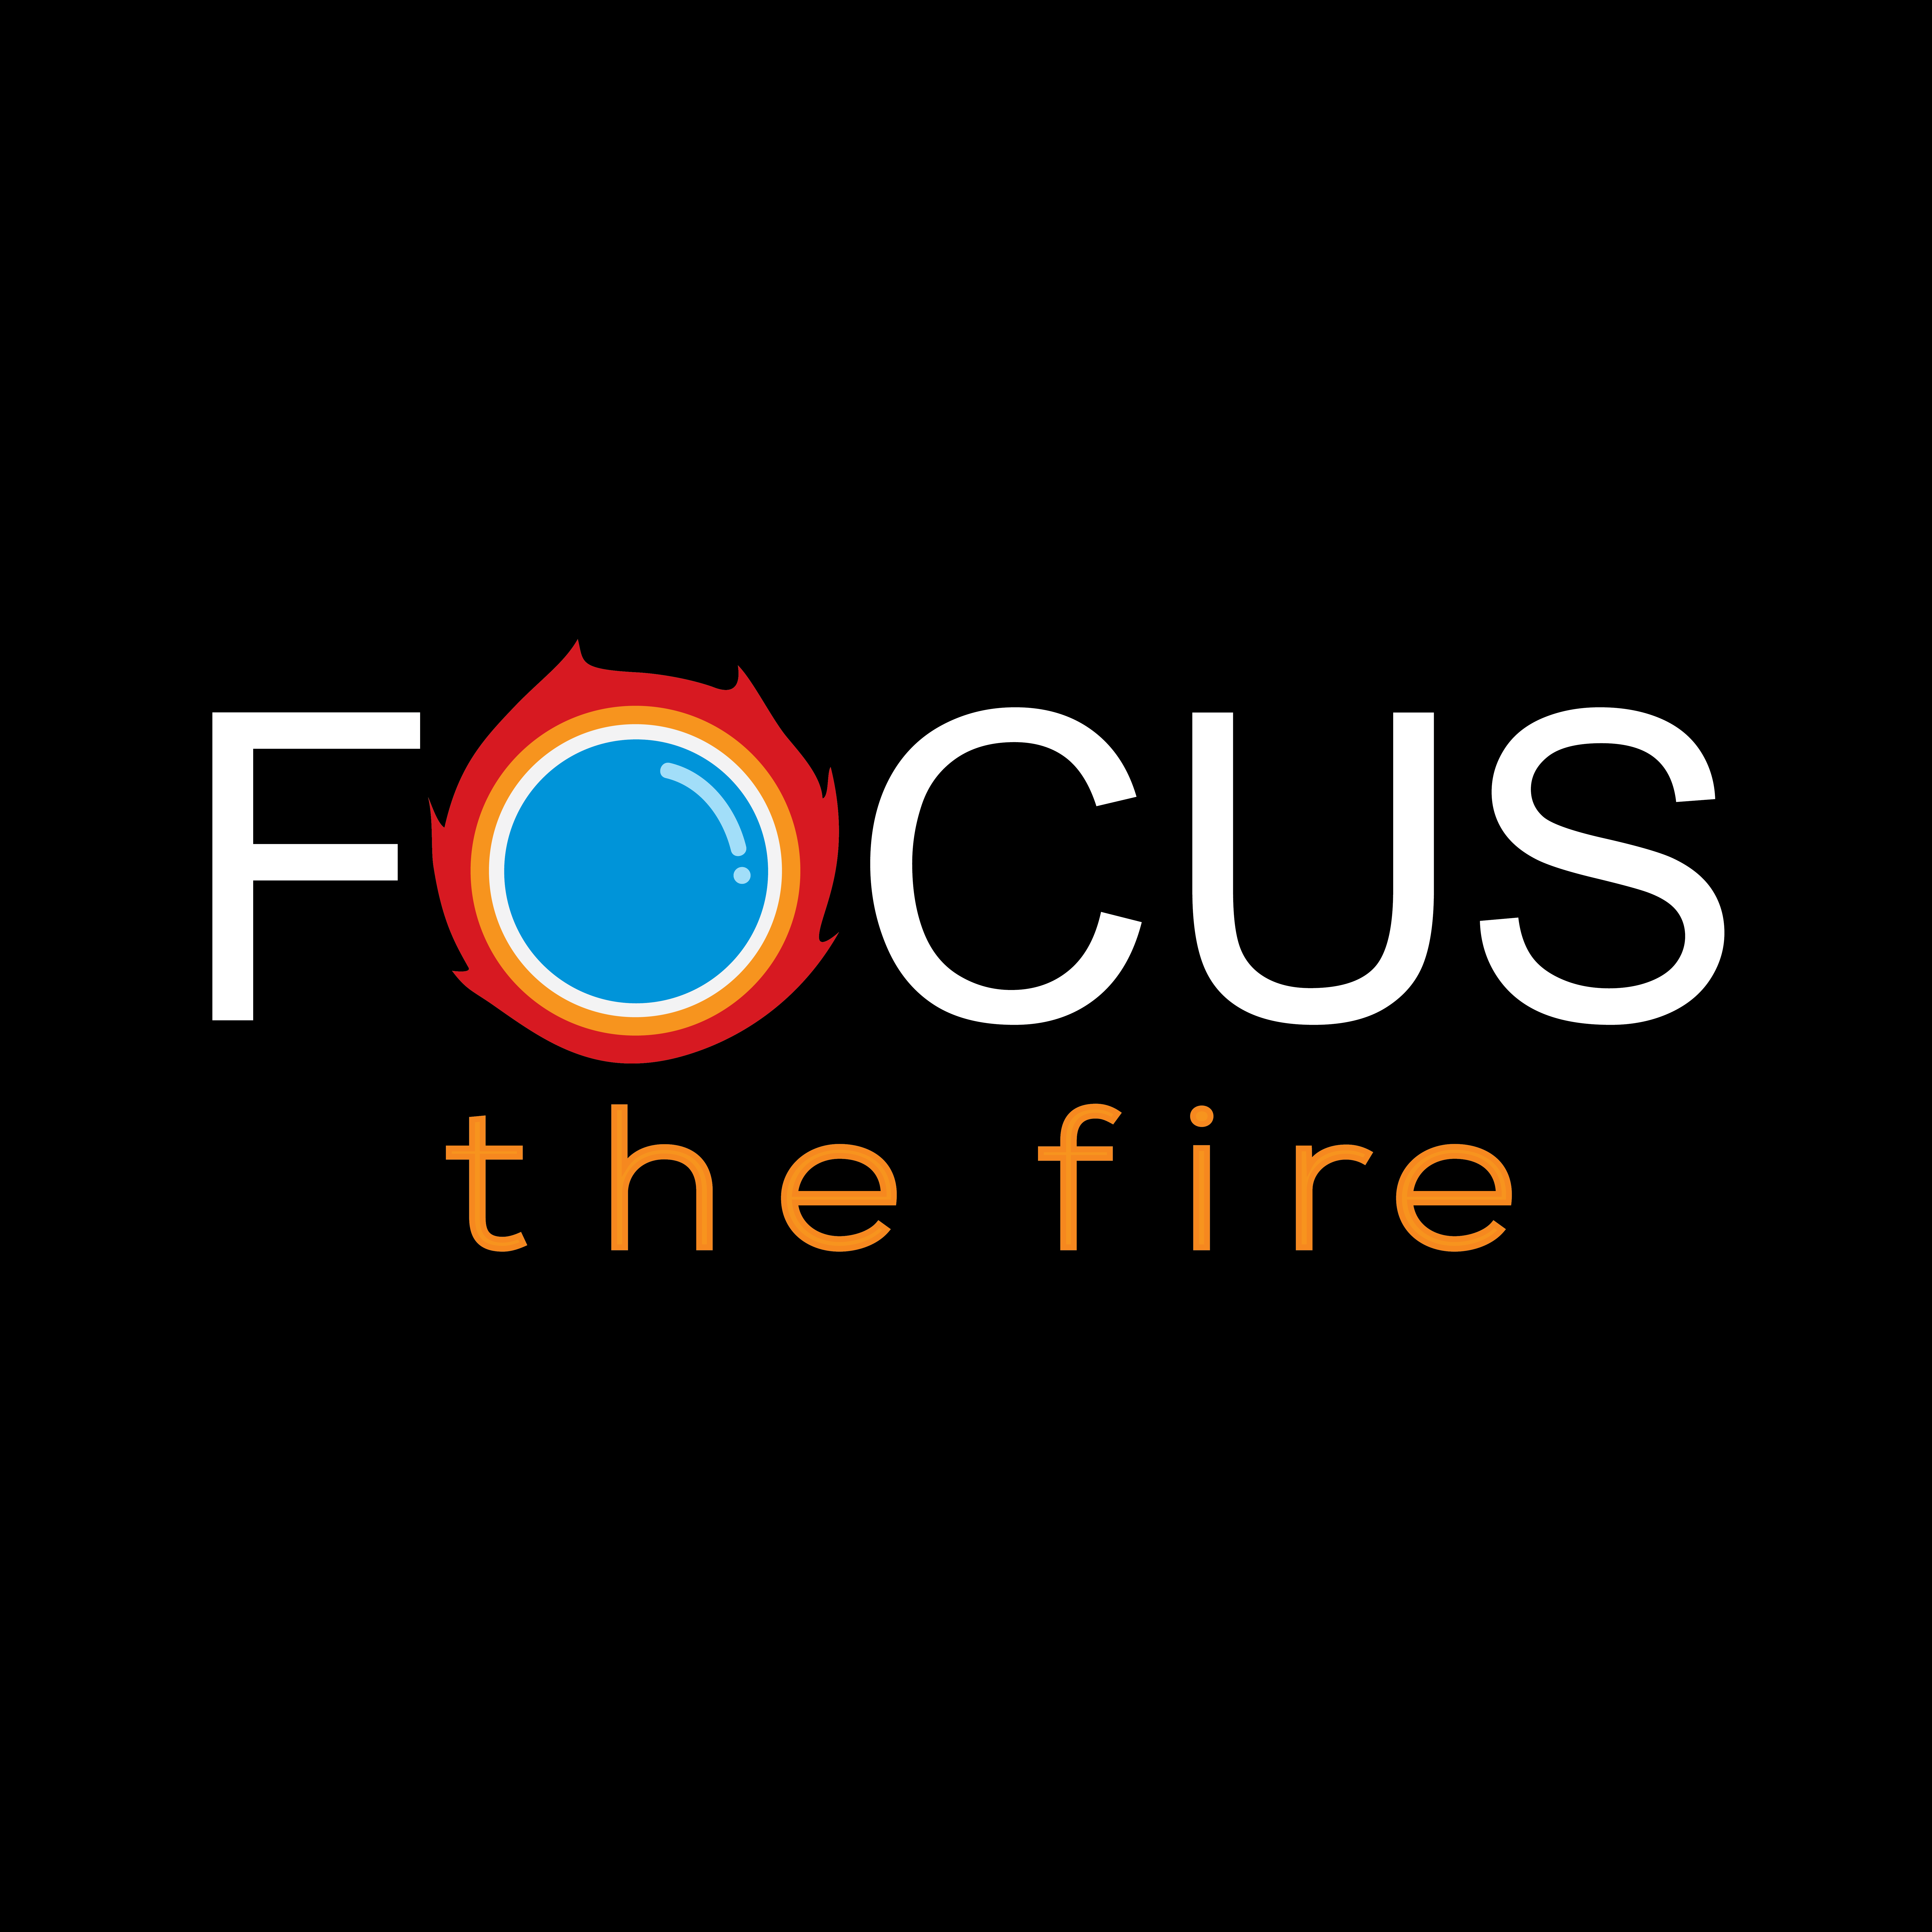 Create a bold eye-catching logo for Focus the Fire